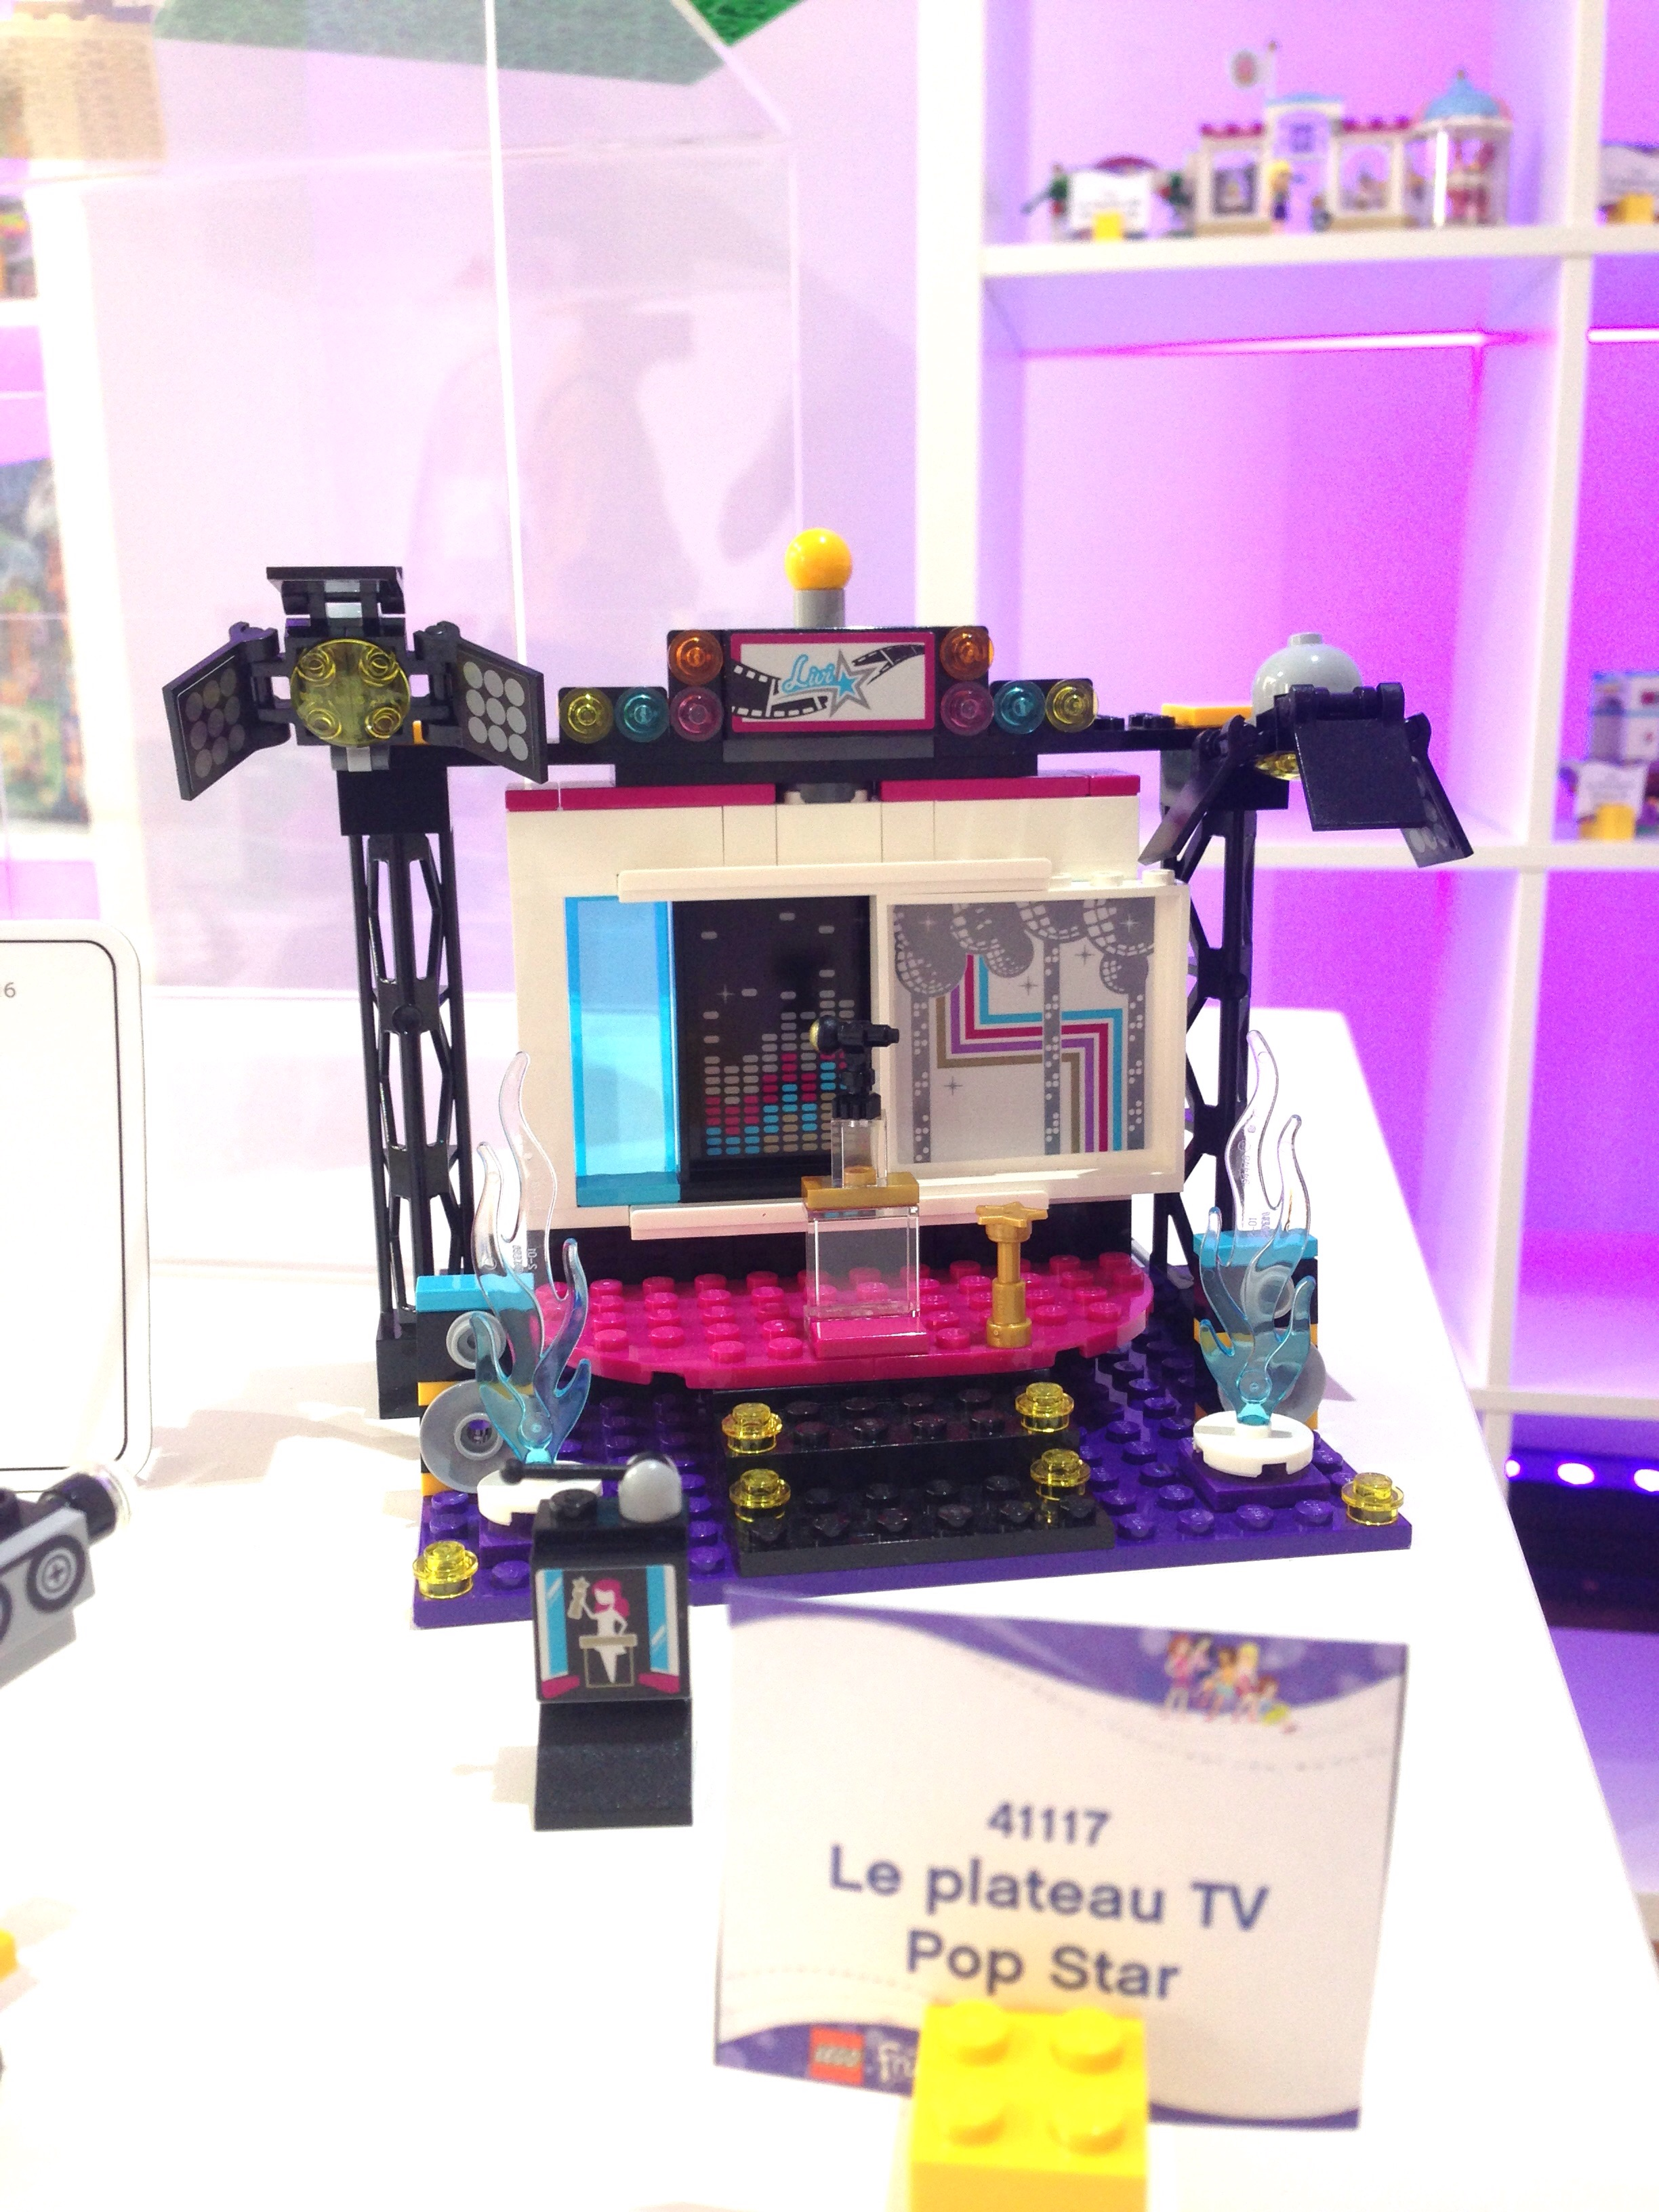 LEGO FRIENDS - LE PLATEAU TV POP STAR - Réference : 41117 (environ 20 €)